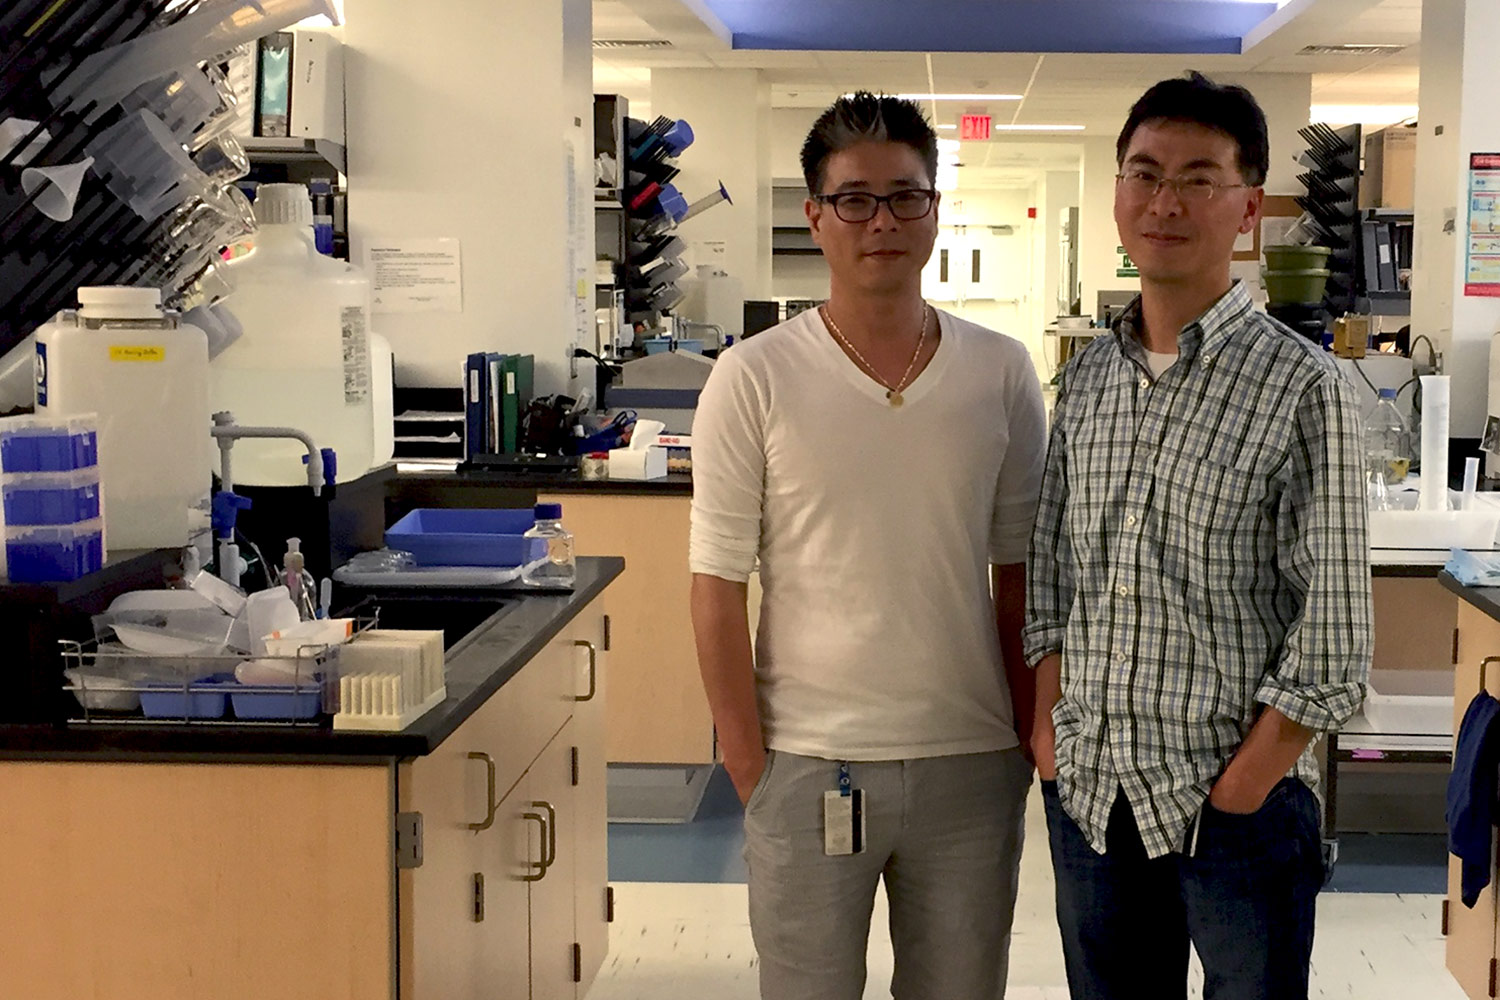 Dong-Wook Kim, left, is the first author of the paper, while Kwon Park is the senior author.